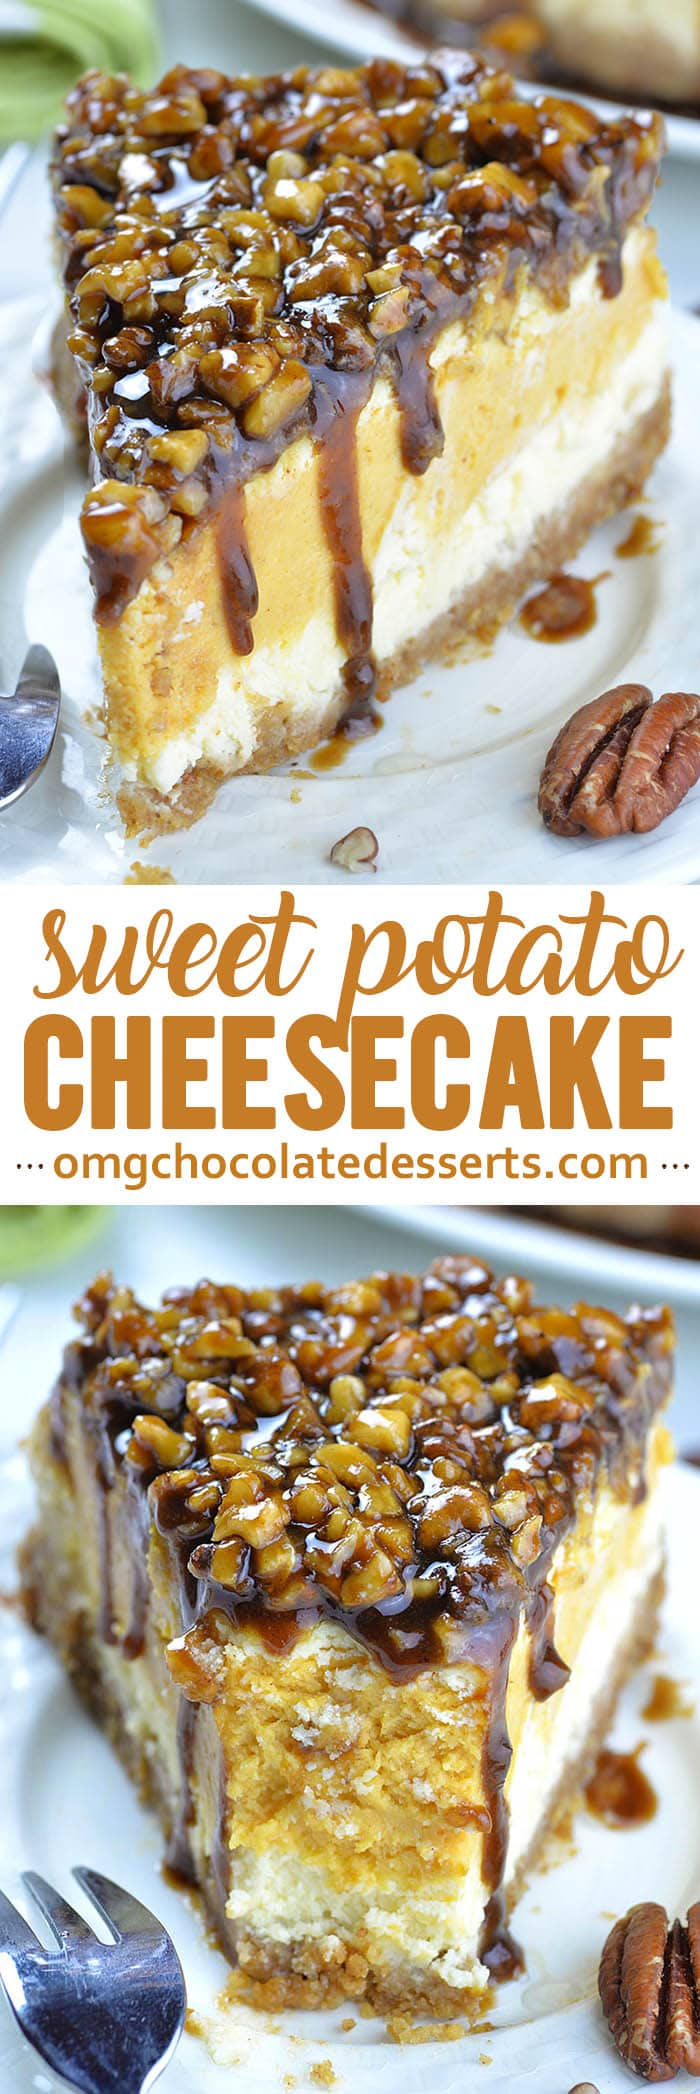 This year make a fun twist on classics and turn them into one delicious and festive dessert- Sweet Potato Cheesecake with Pecan Topping.